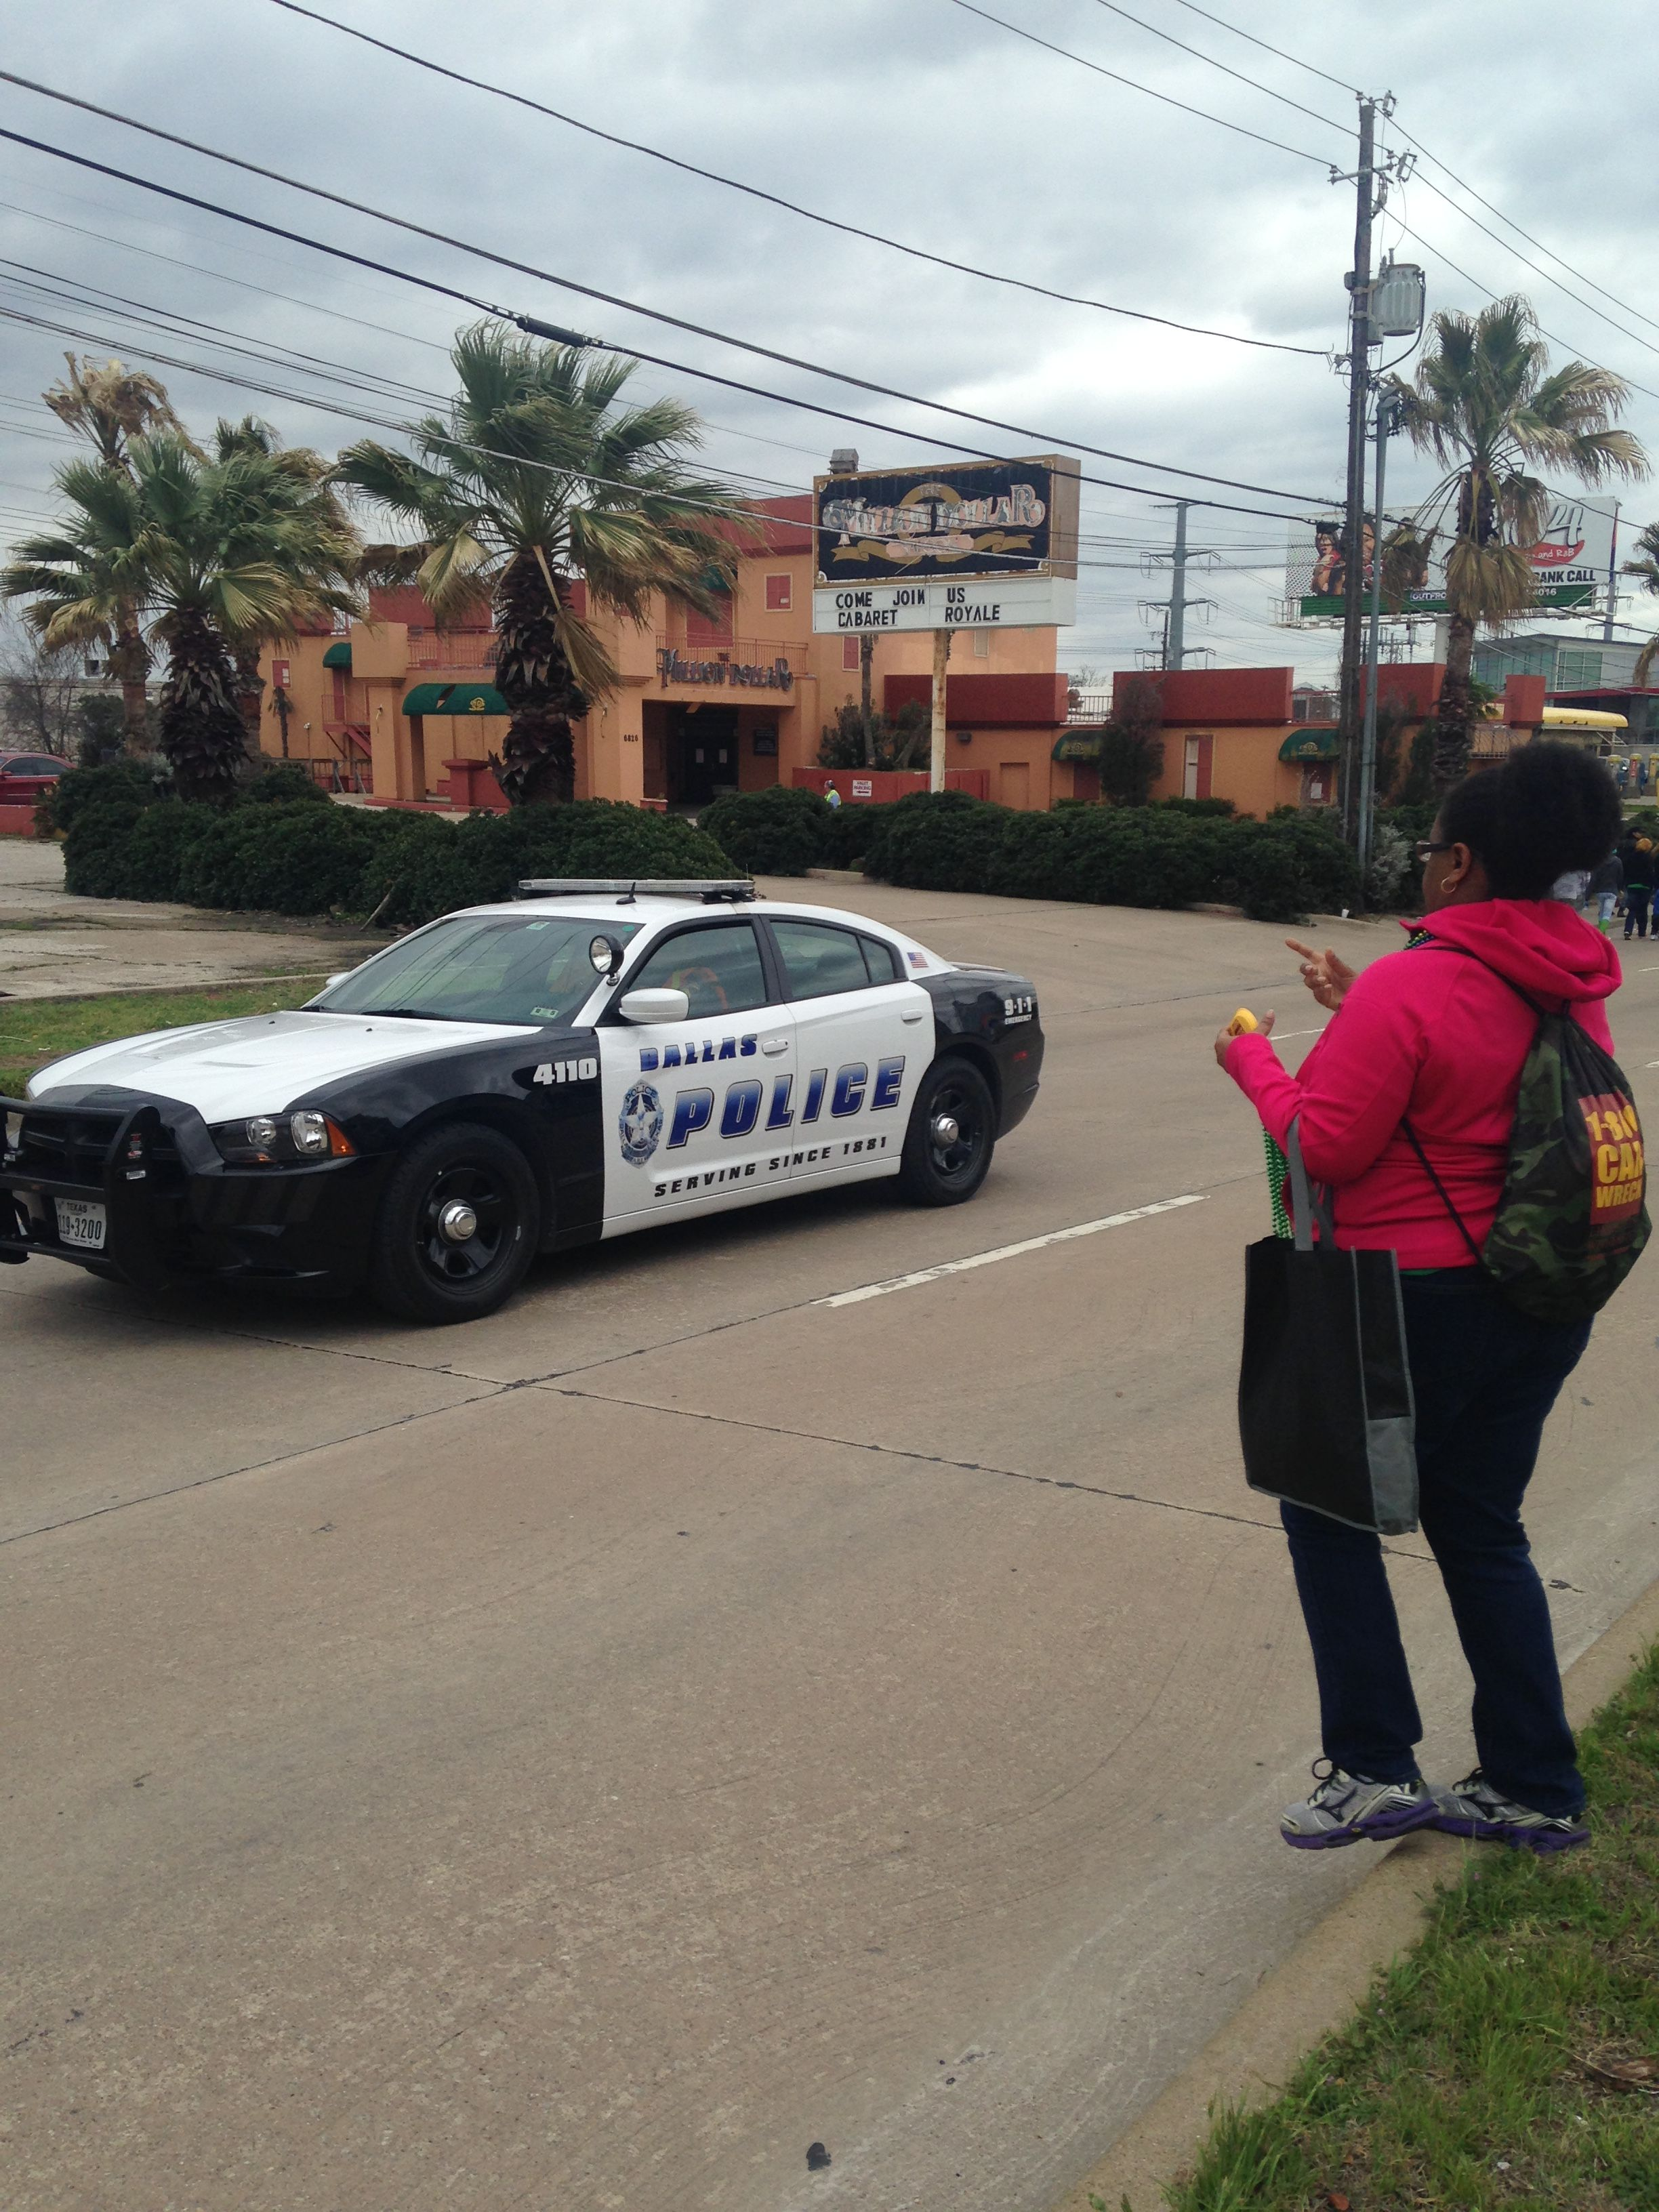 Brandy handing out beads to the Dallas Police #1800StPattysParade